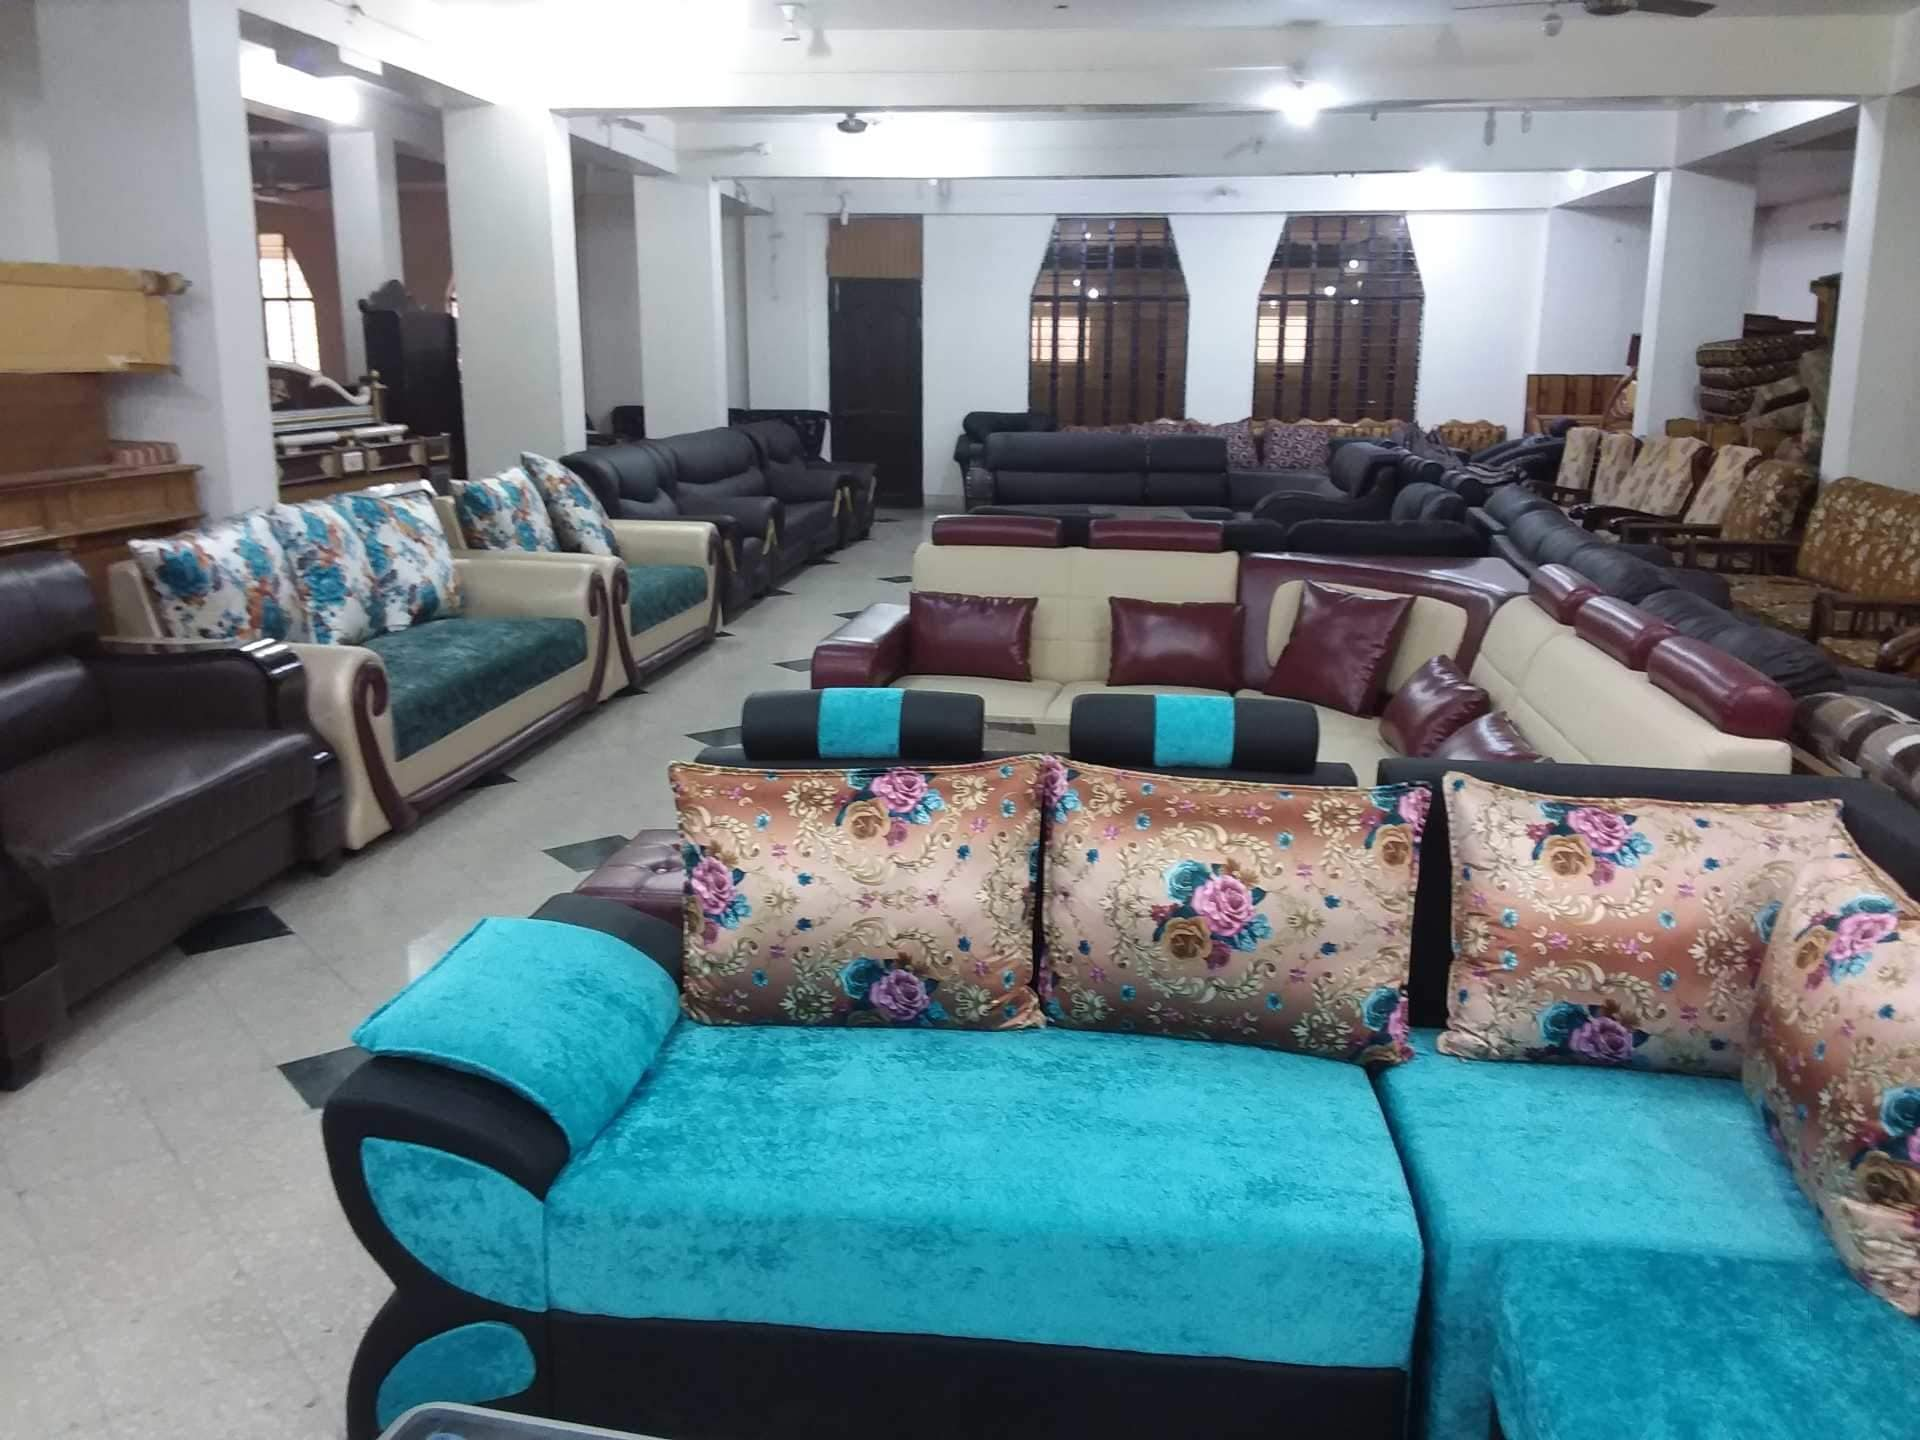 Interio Sofa Marilyn Top Godrej Interio Showrooms In Nala Road Kadamkuan Patna Best